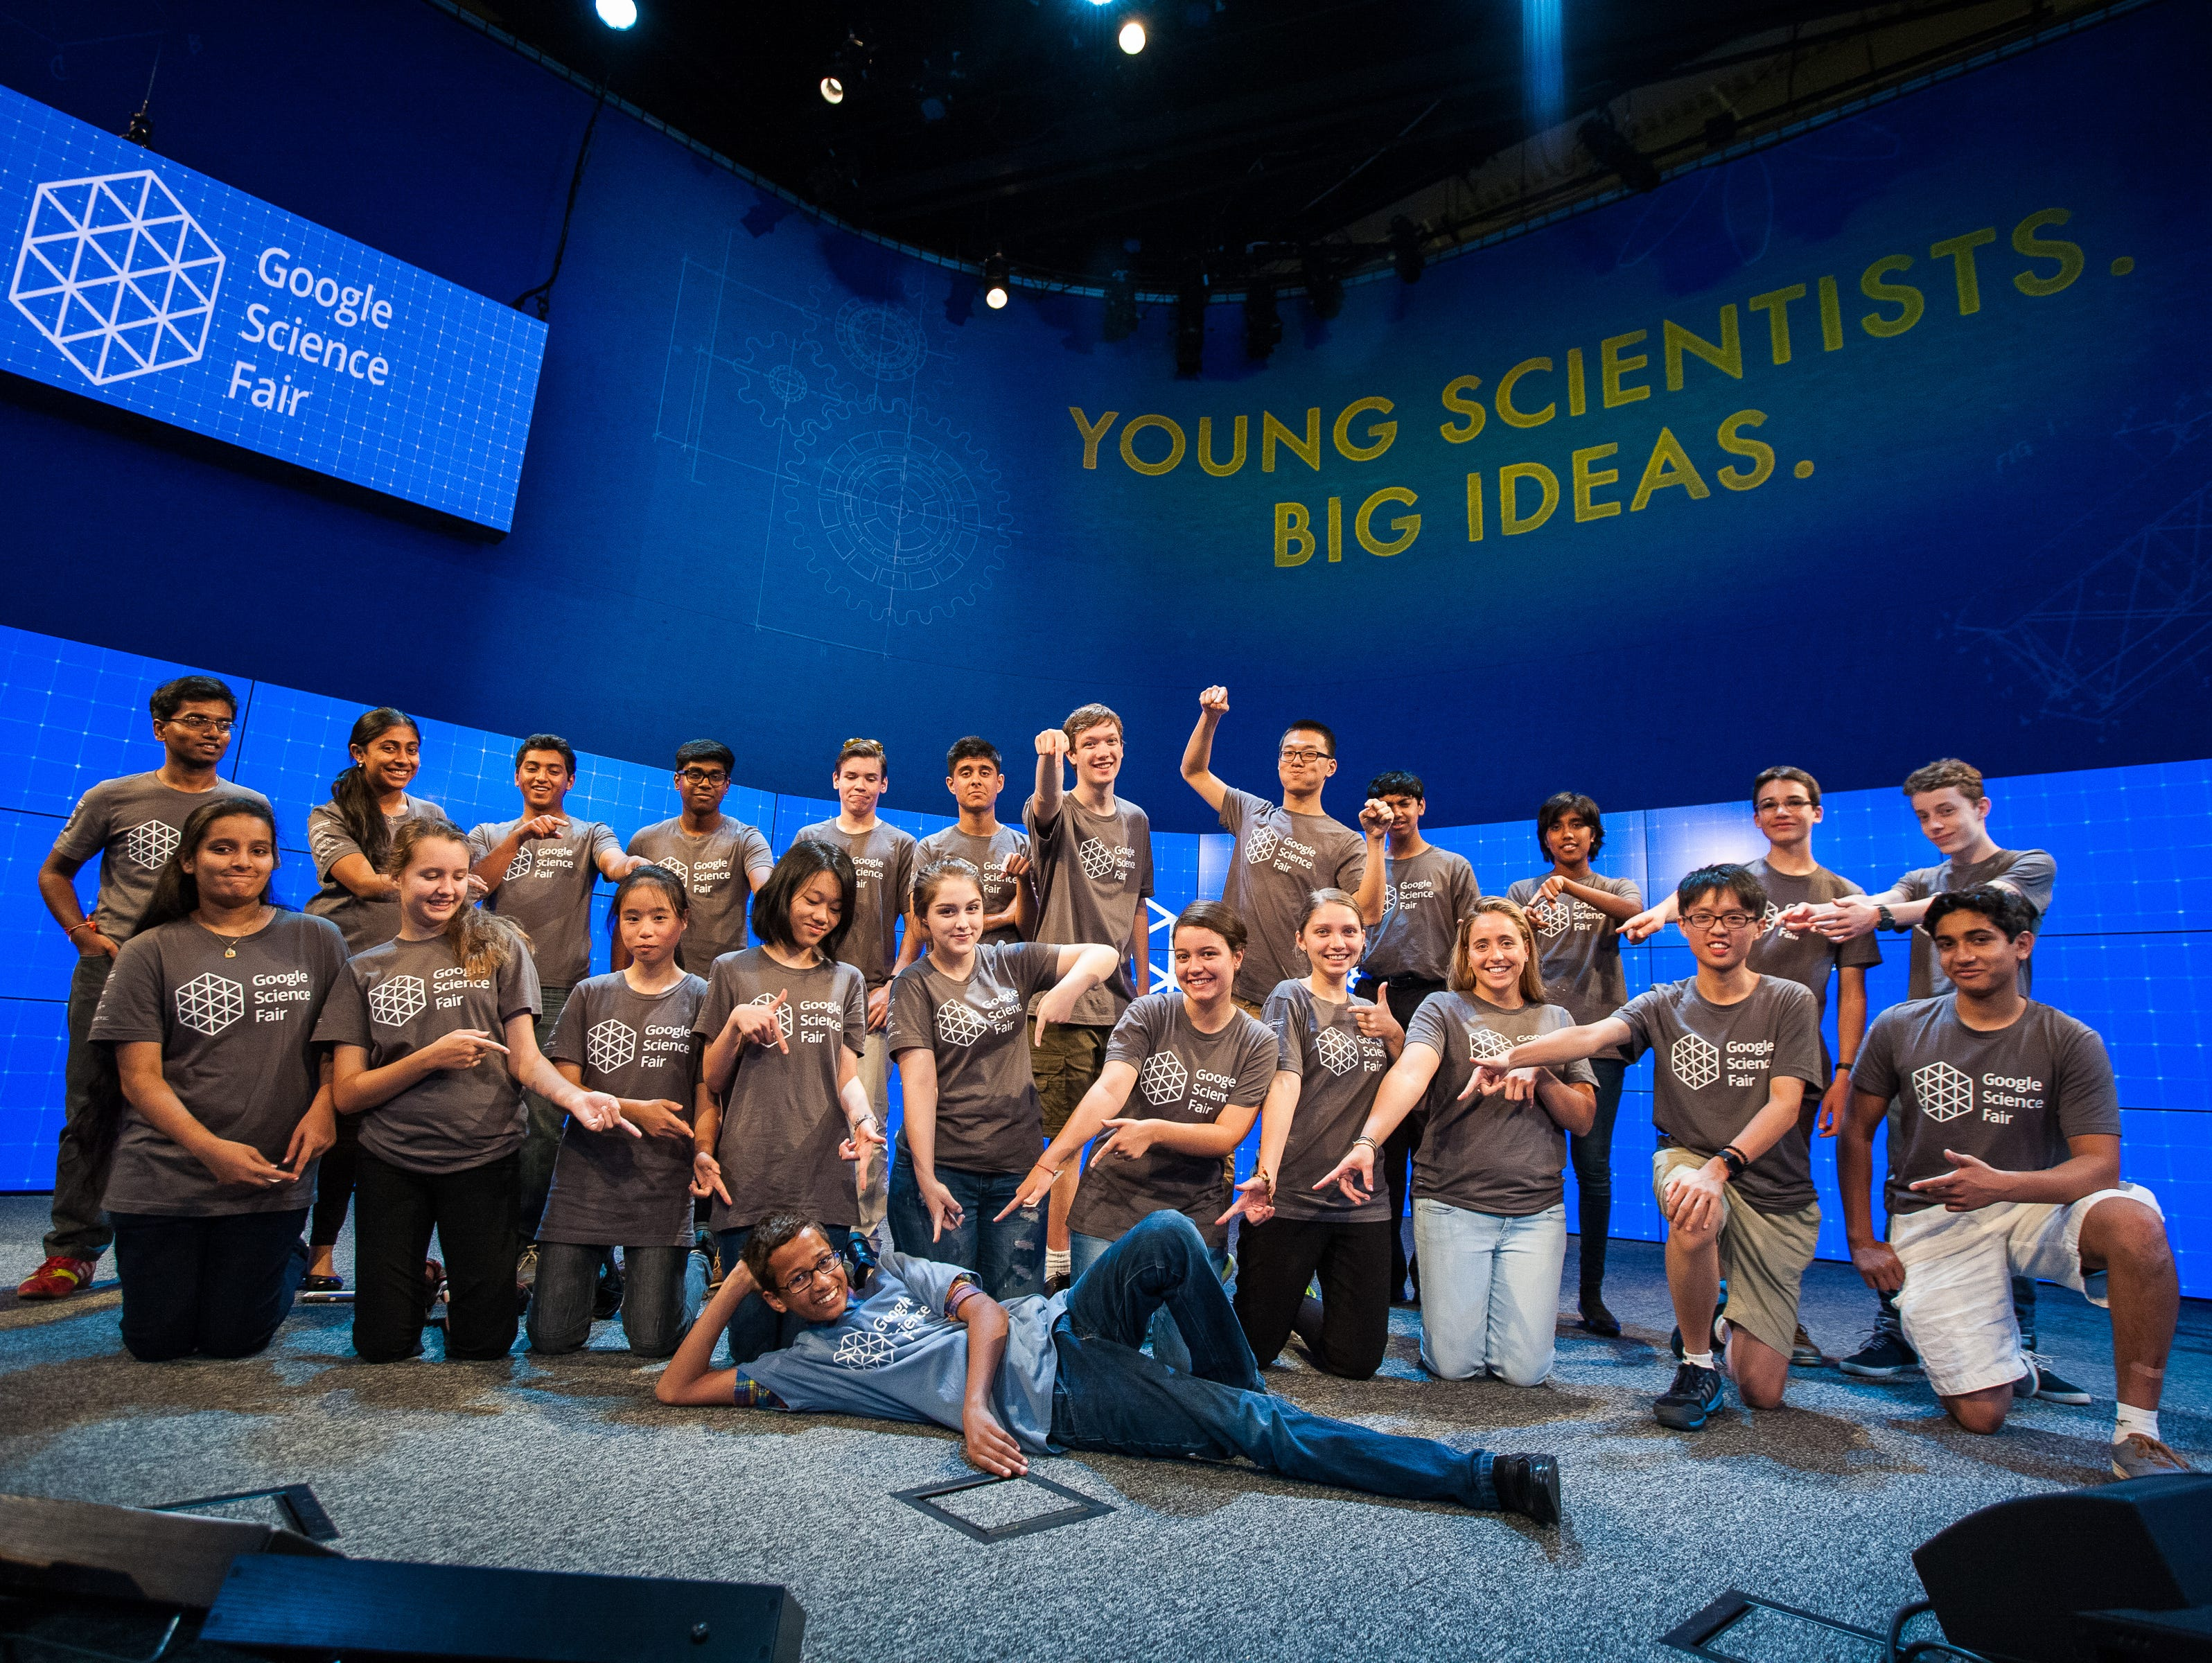 The 20 finalists in the Google Science Fair got to meet another young scientist on Monday: Ahmed Mohamed.